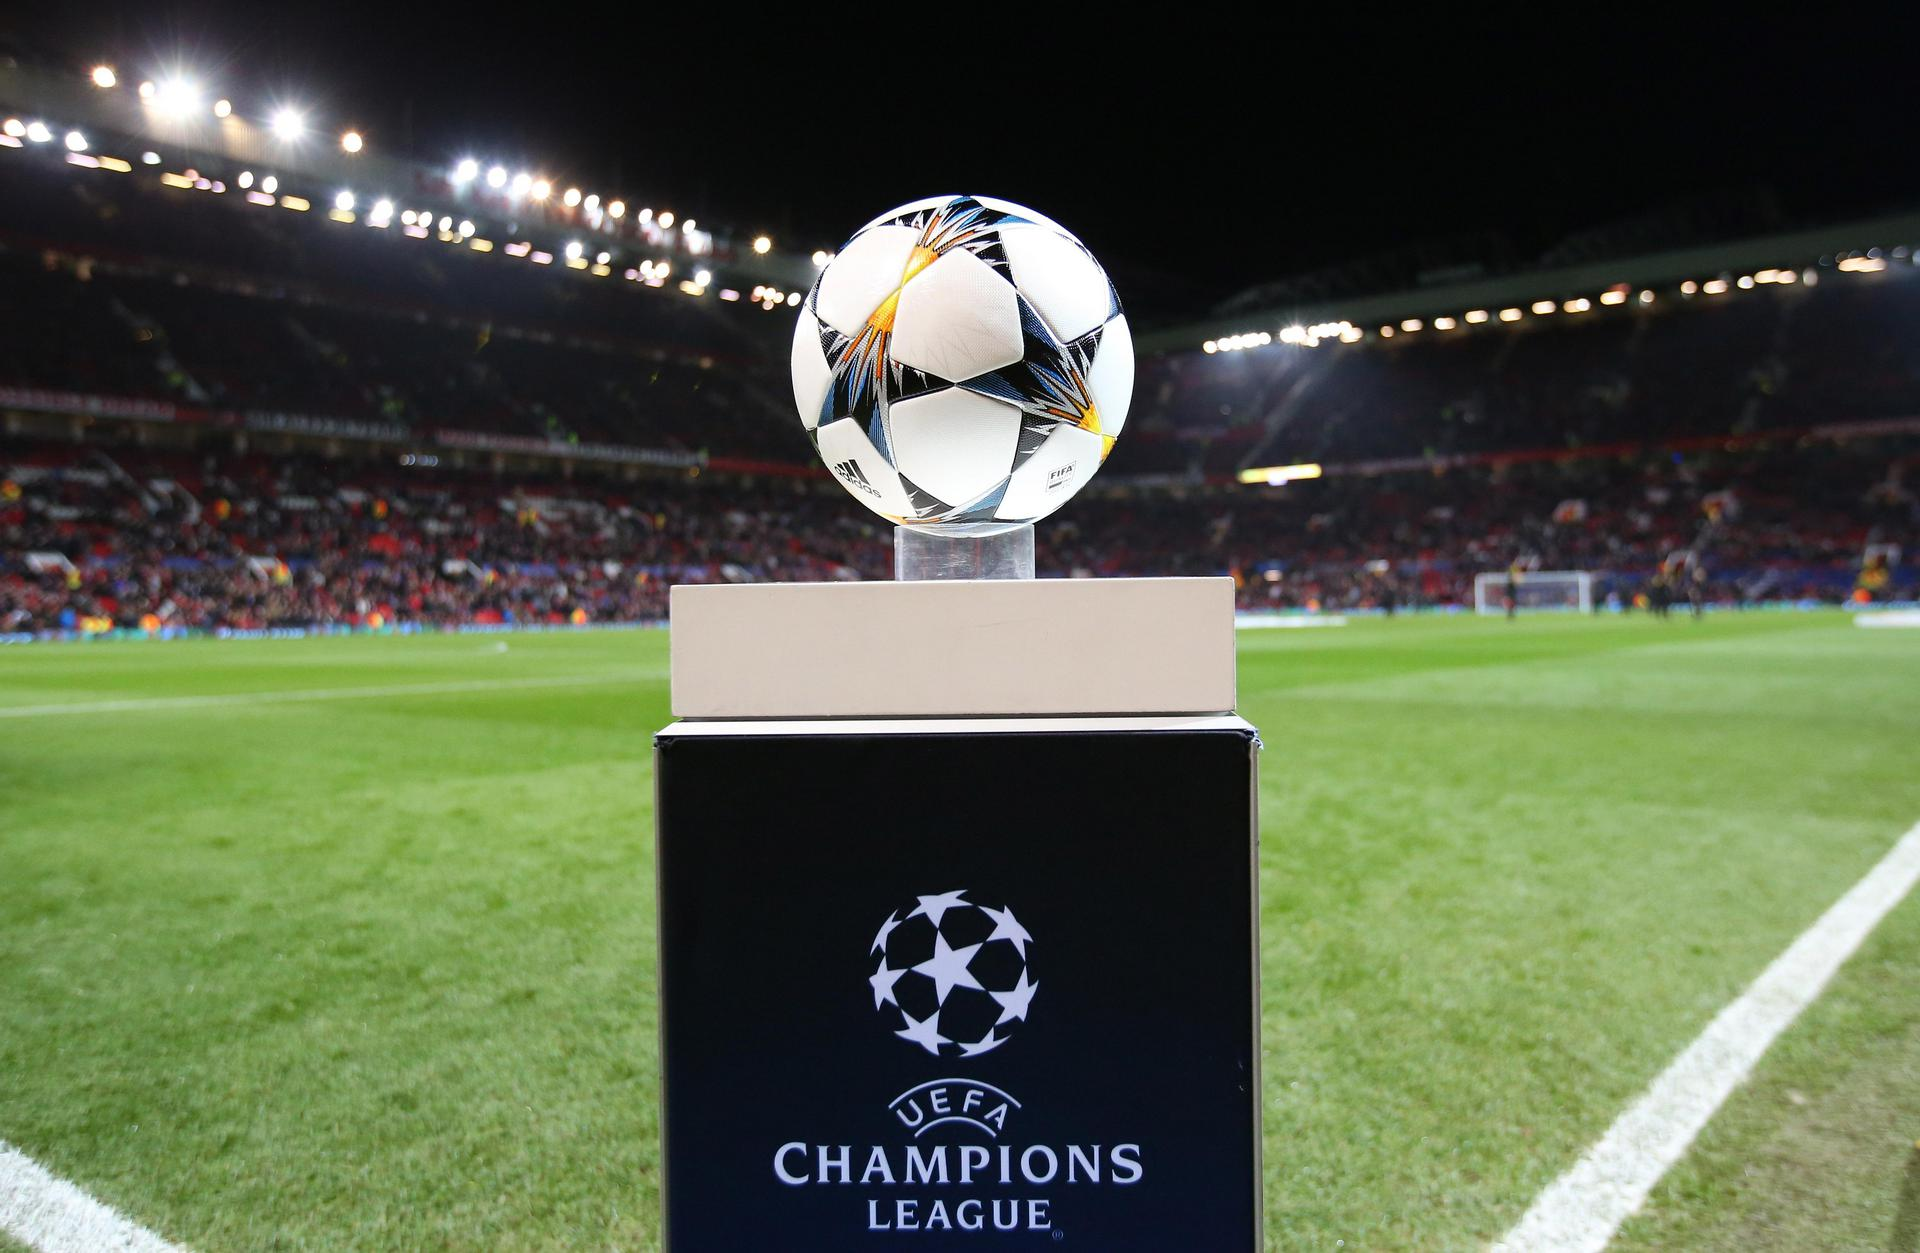 UEFA Champions League ball on the plinth at Old Trafford.